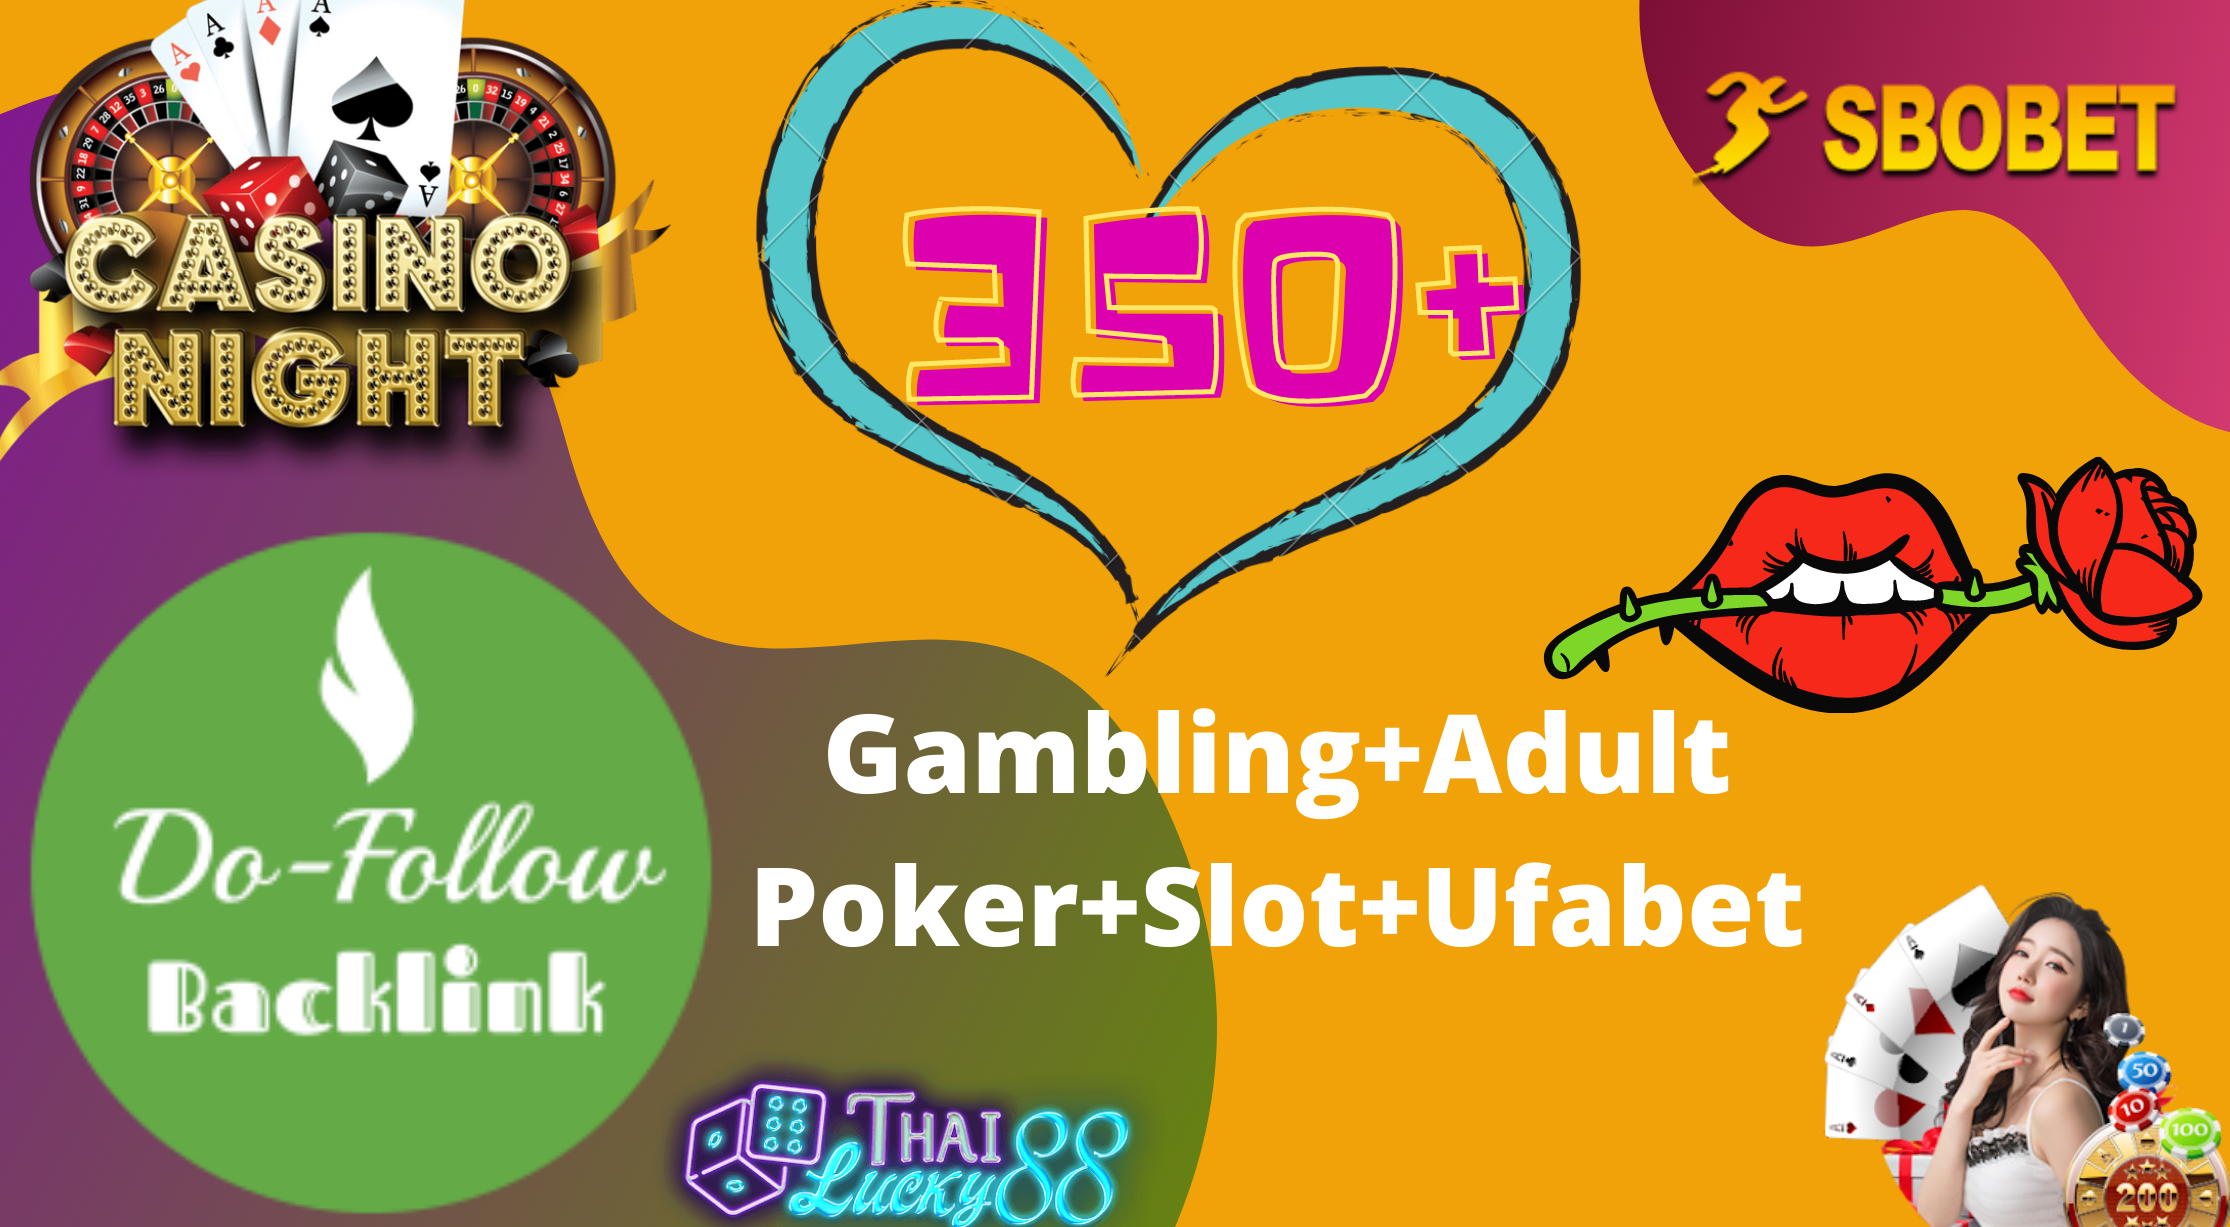 High Quality 350+Dofollow Adult Backlink, Gambling Backlink, Poker for your site